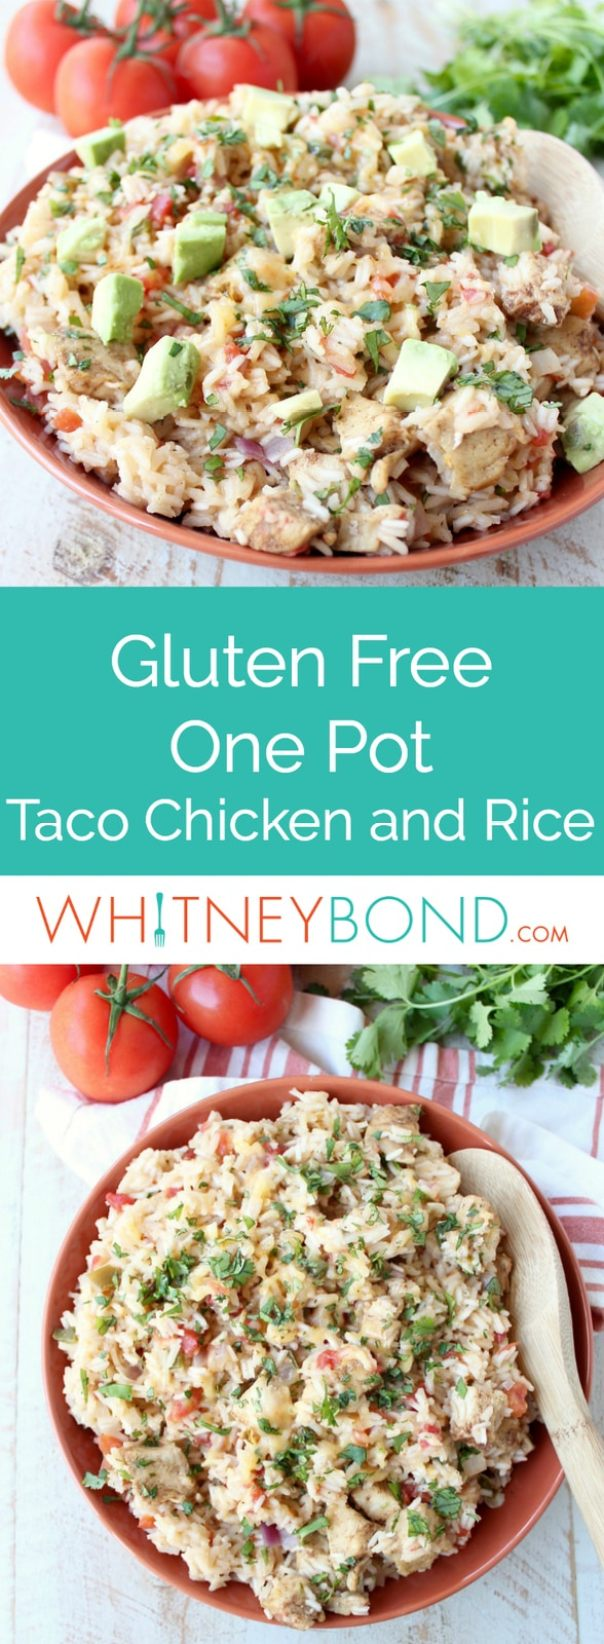 In one pot and under an hour, whip up this delicious Taco Chicken and Rice for dinner, it's flavorful, easy to make and gluten free!